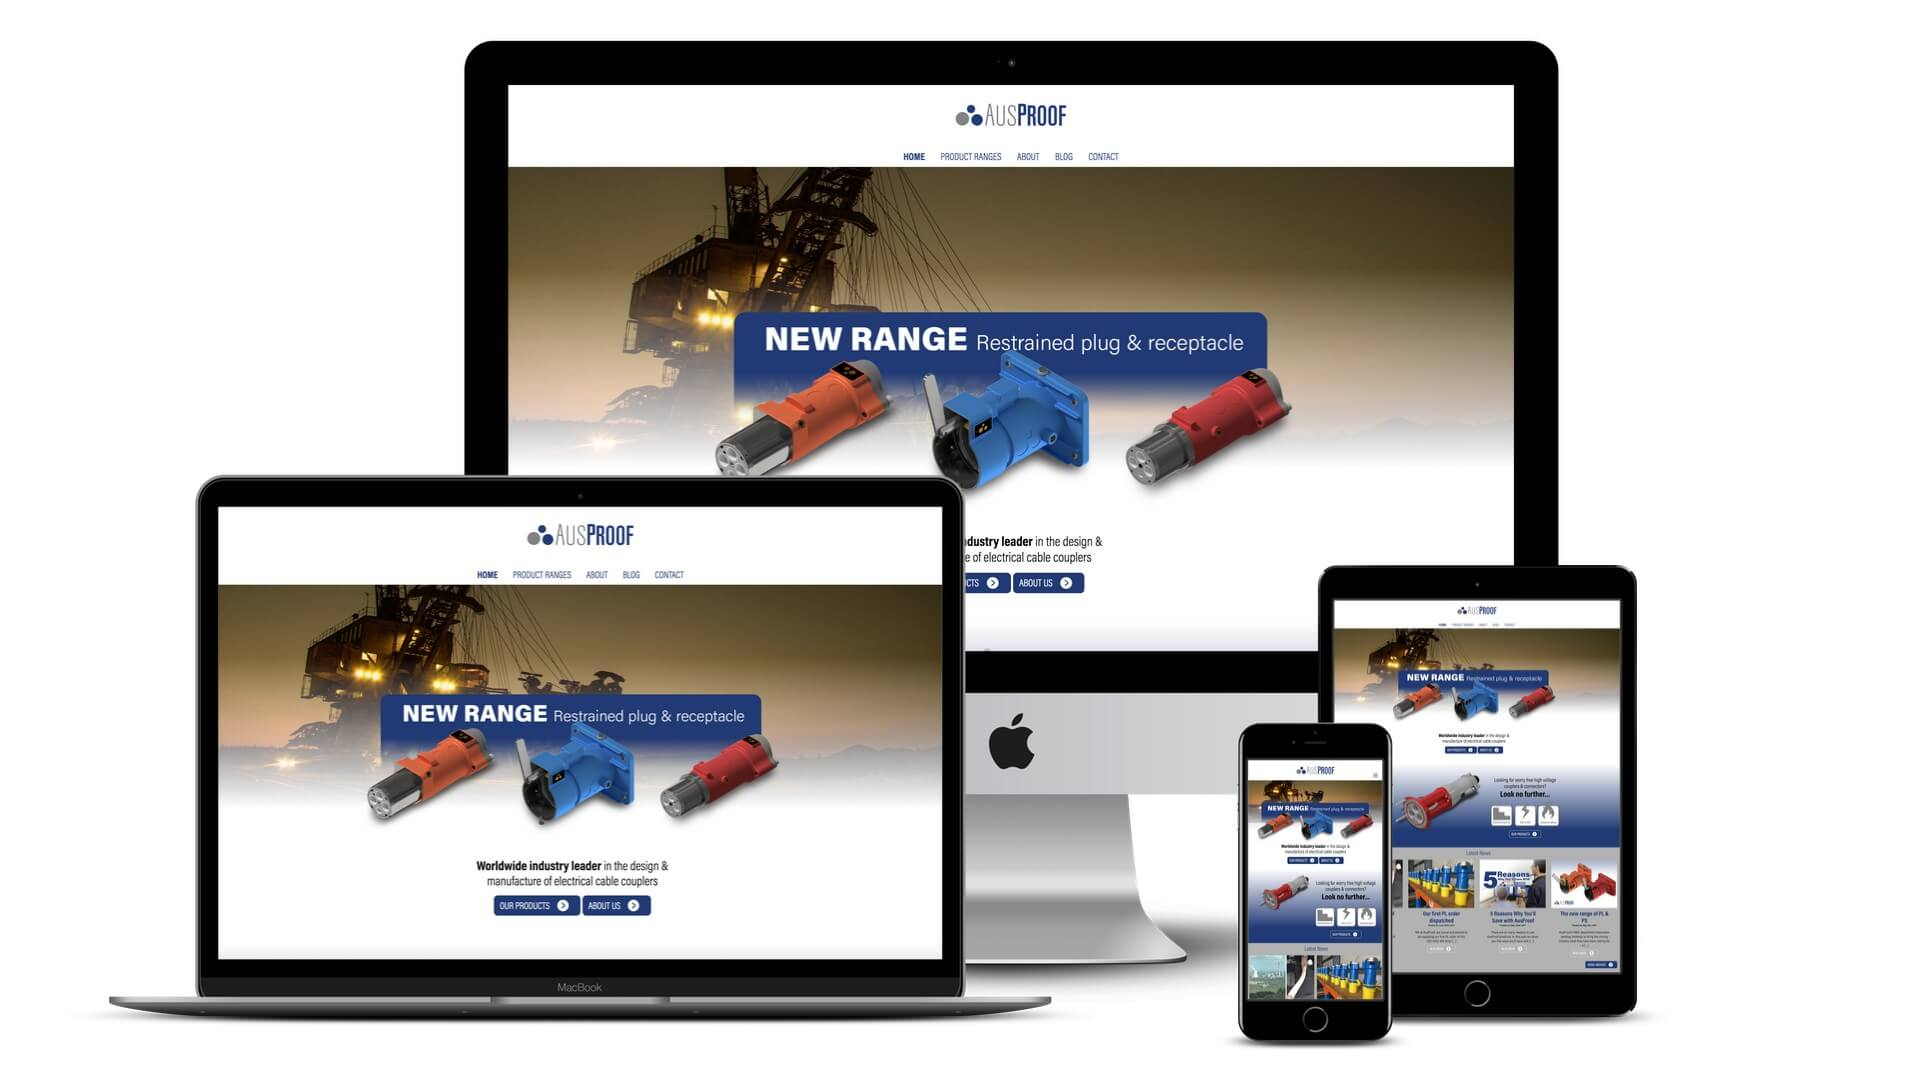 New website - Ausproof - Almost Anything Web & Graphic Design